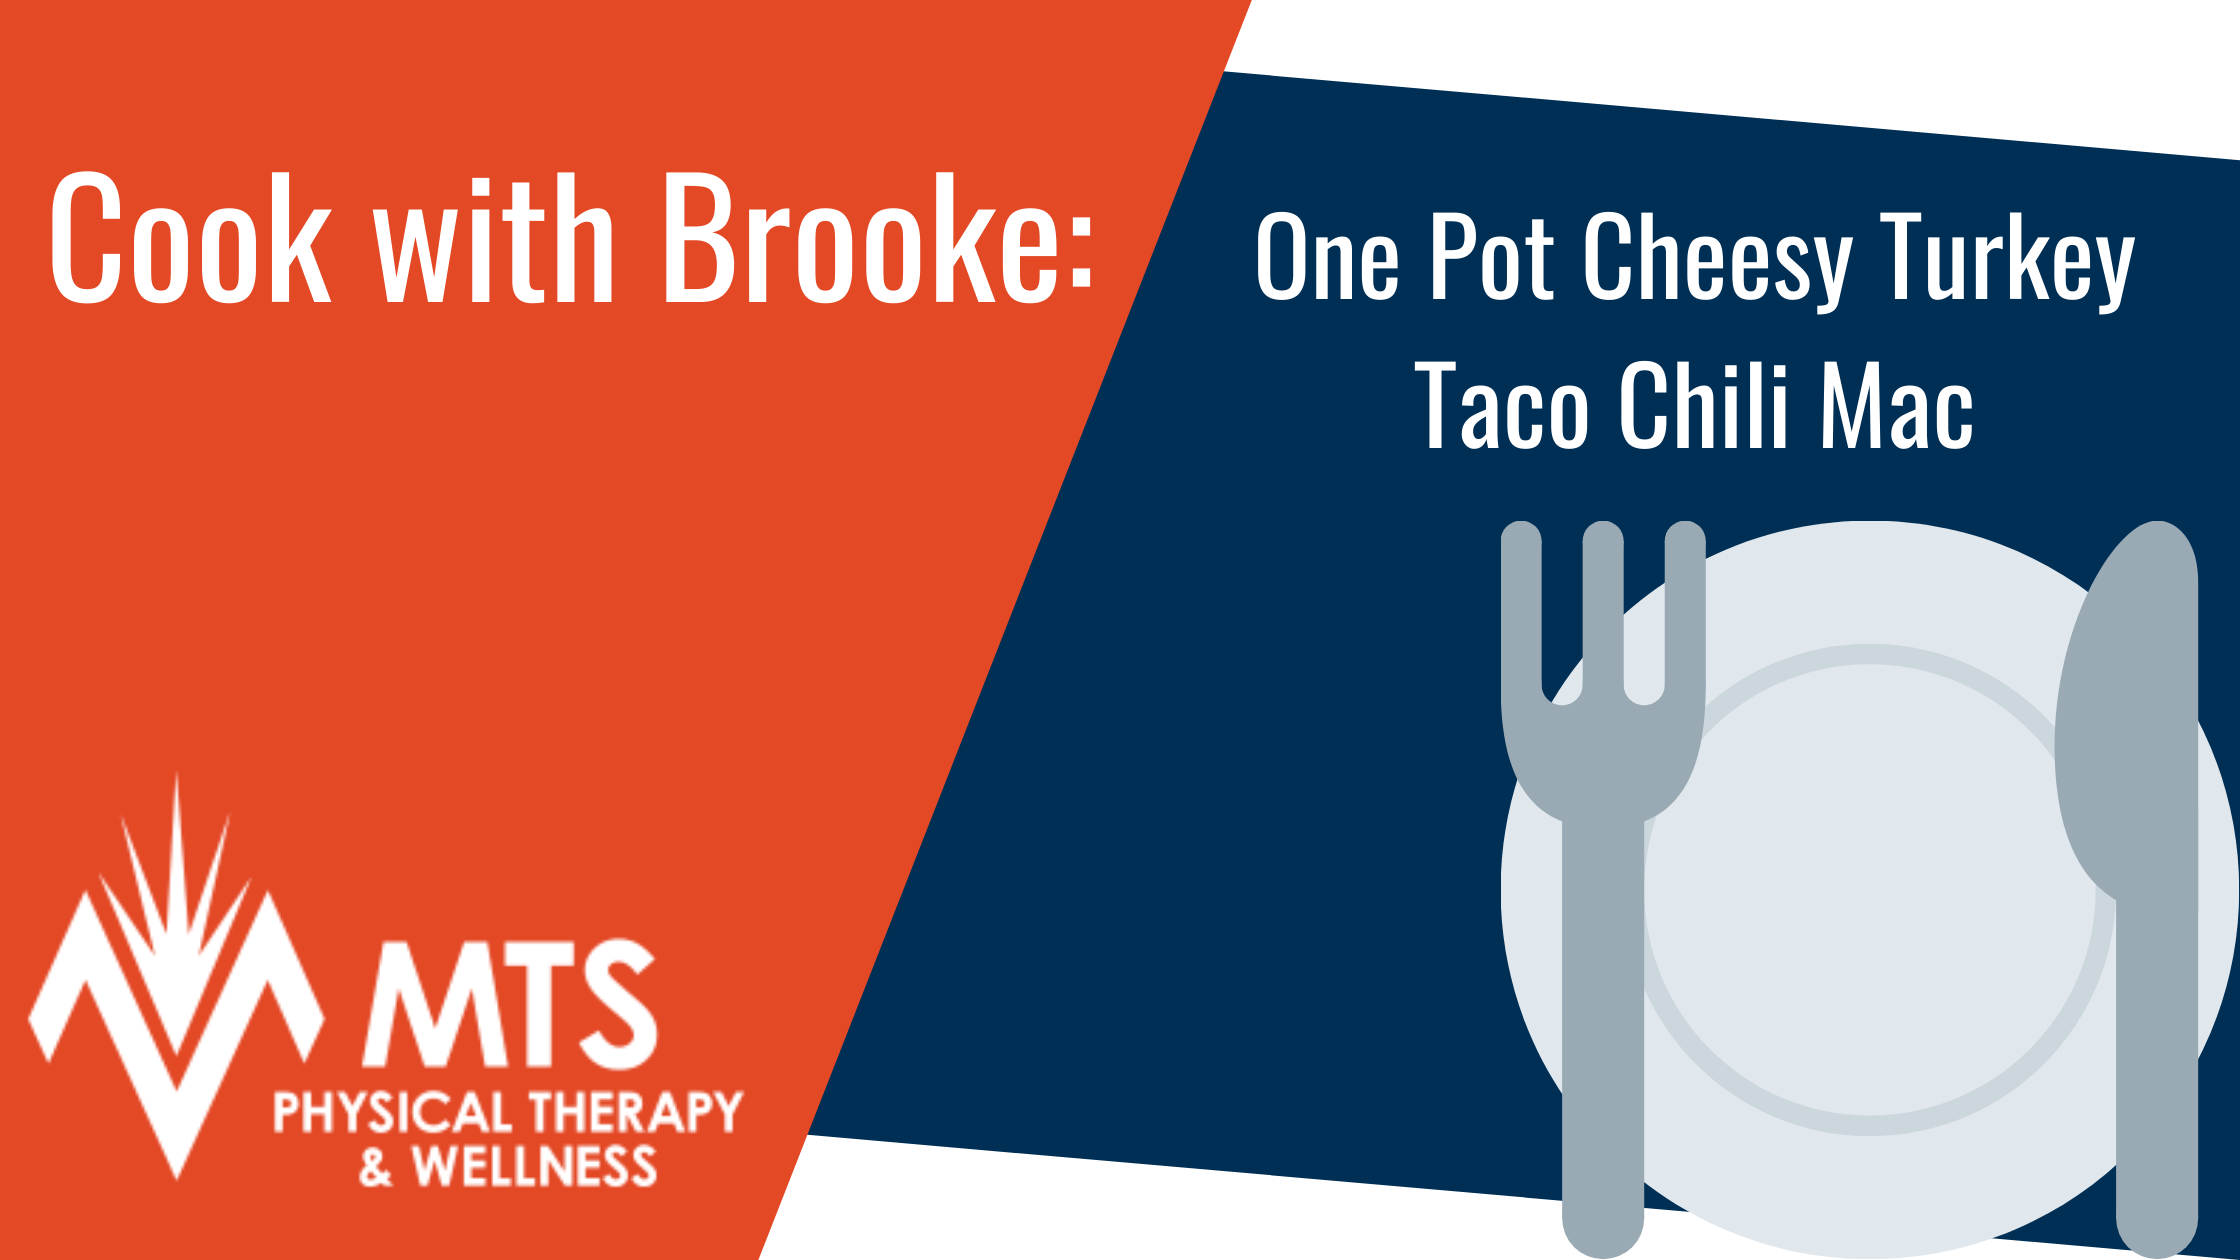 Cook with Brooke: One Pot Cheesy Turkey Taco Chili Mac